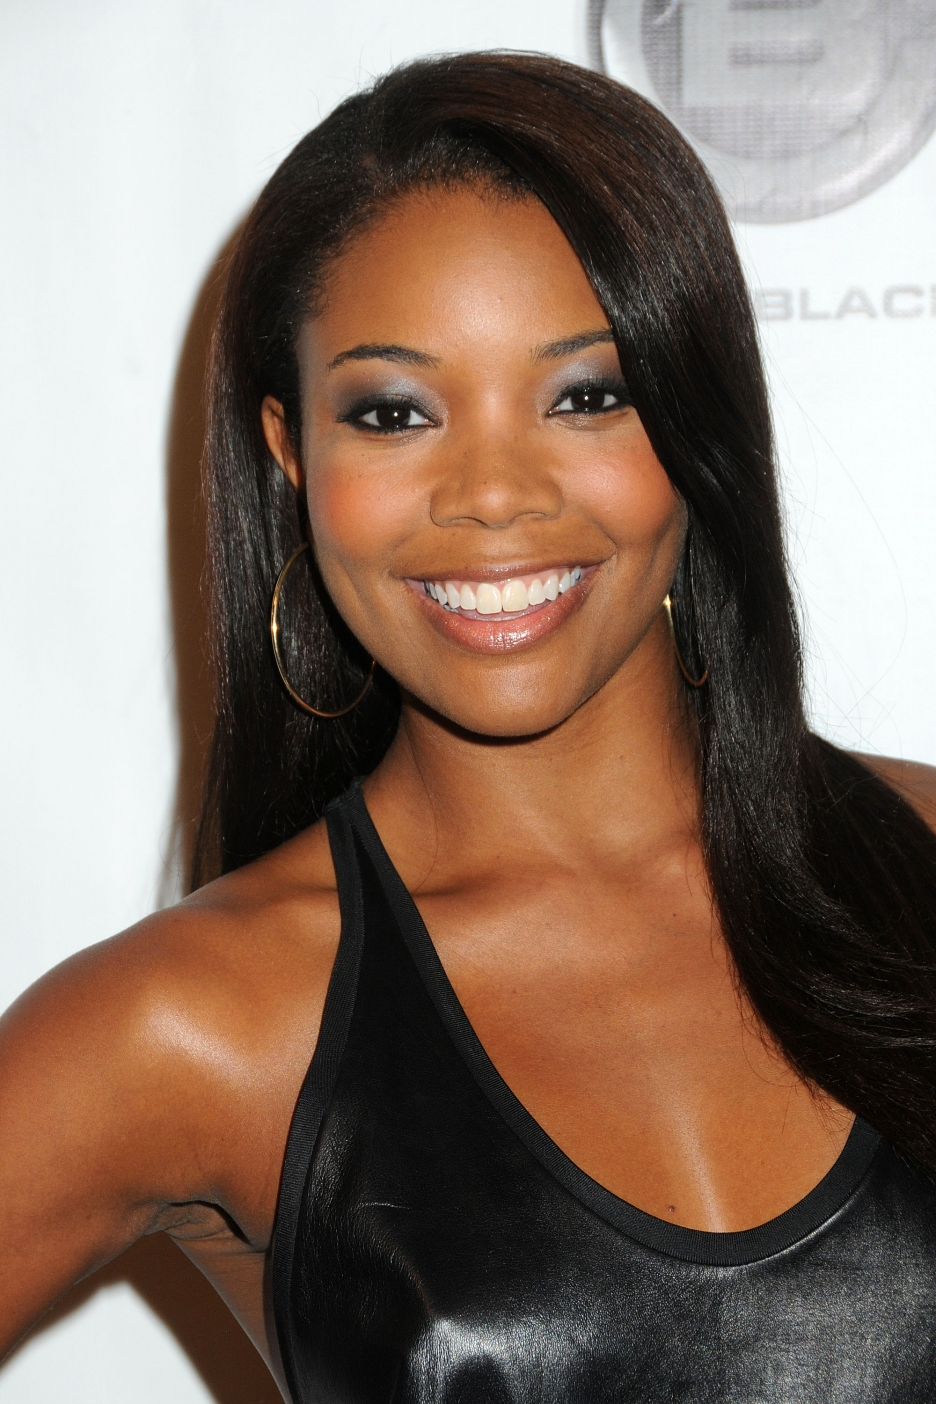 Gabrielle Union Covers Hype Hair Magazine S March 2015 Issue: Being Mary Jane... And Now I'm Not Talking About Getting